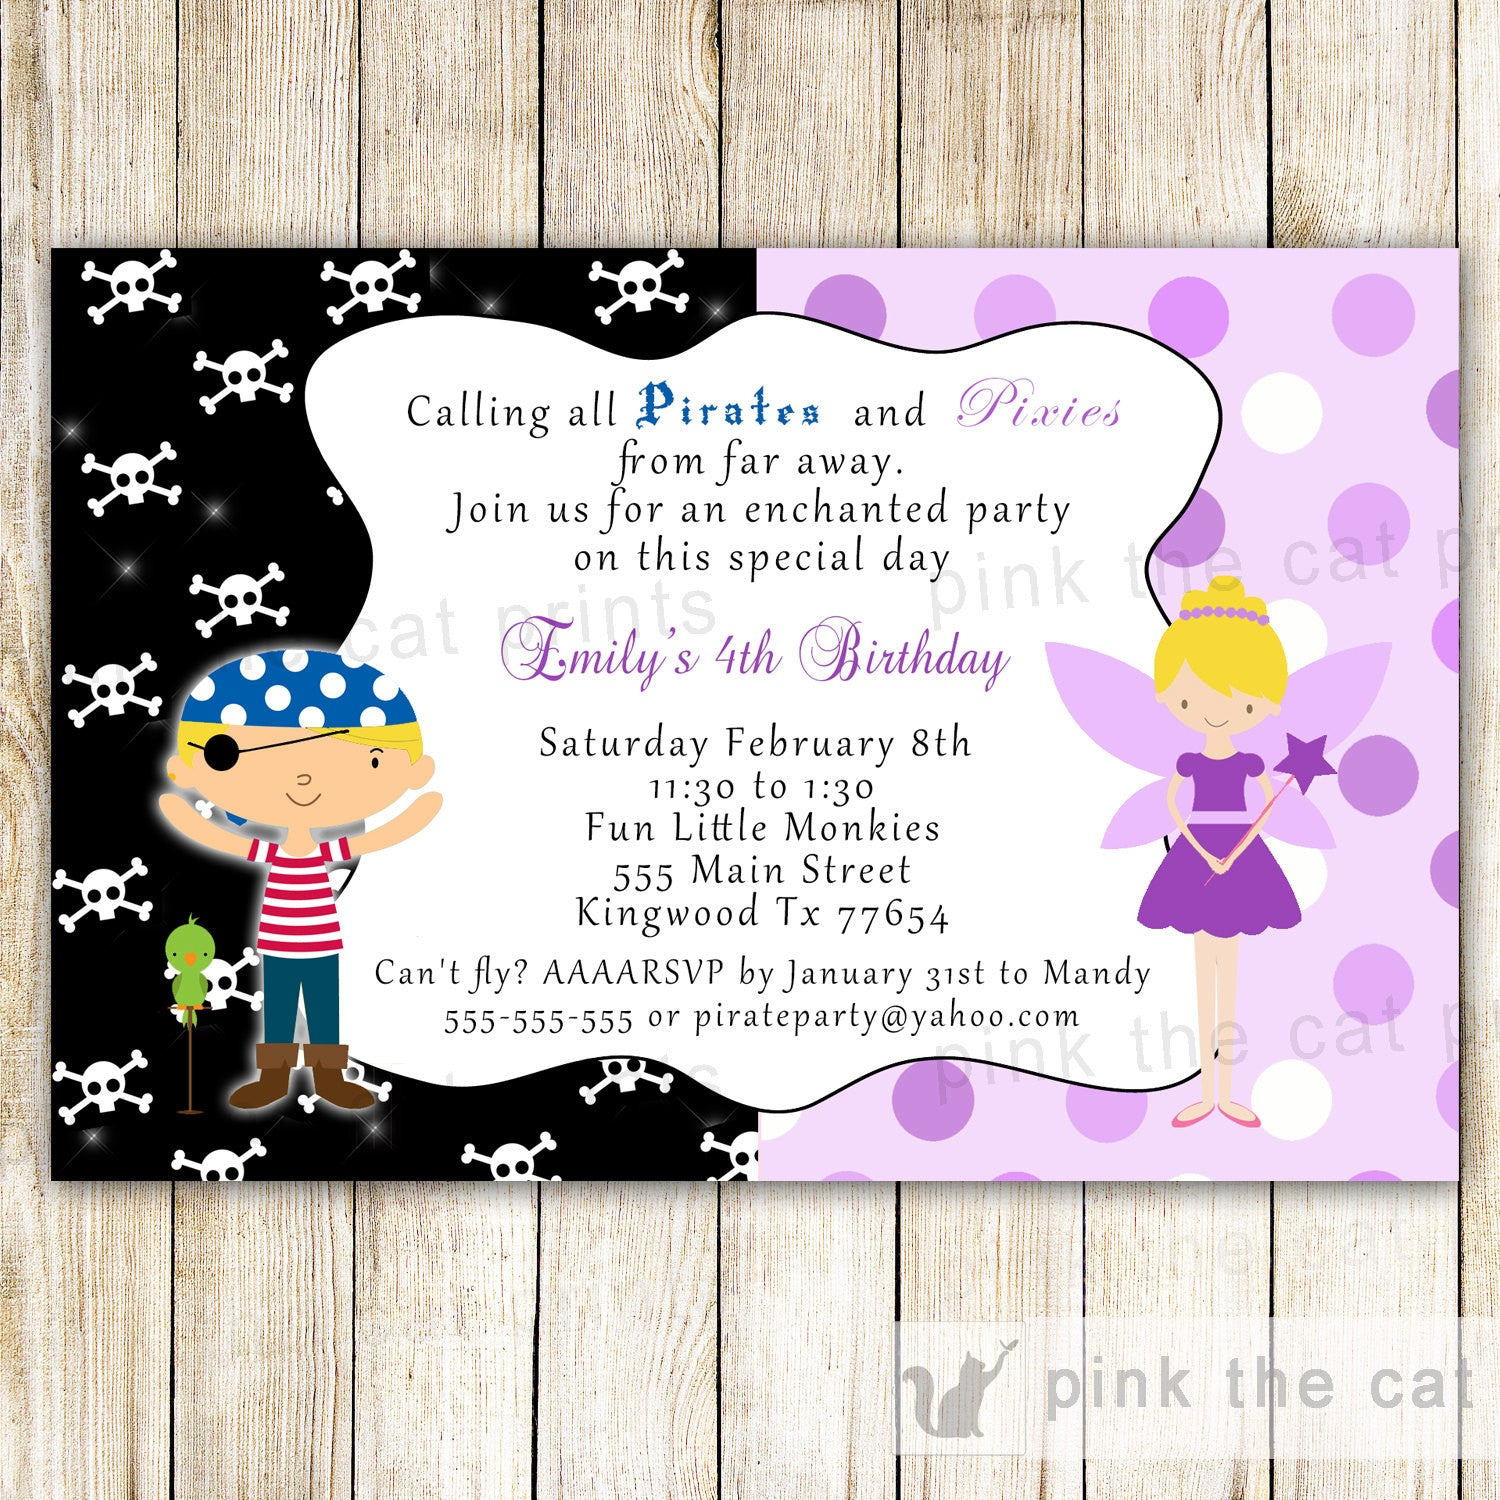 Pirate Fairy Invitation Purple Pixie Kids Birthday Party – Pink The Cat